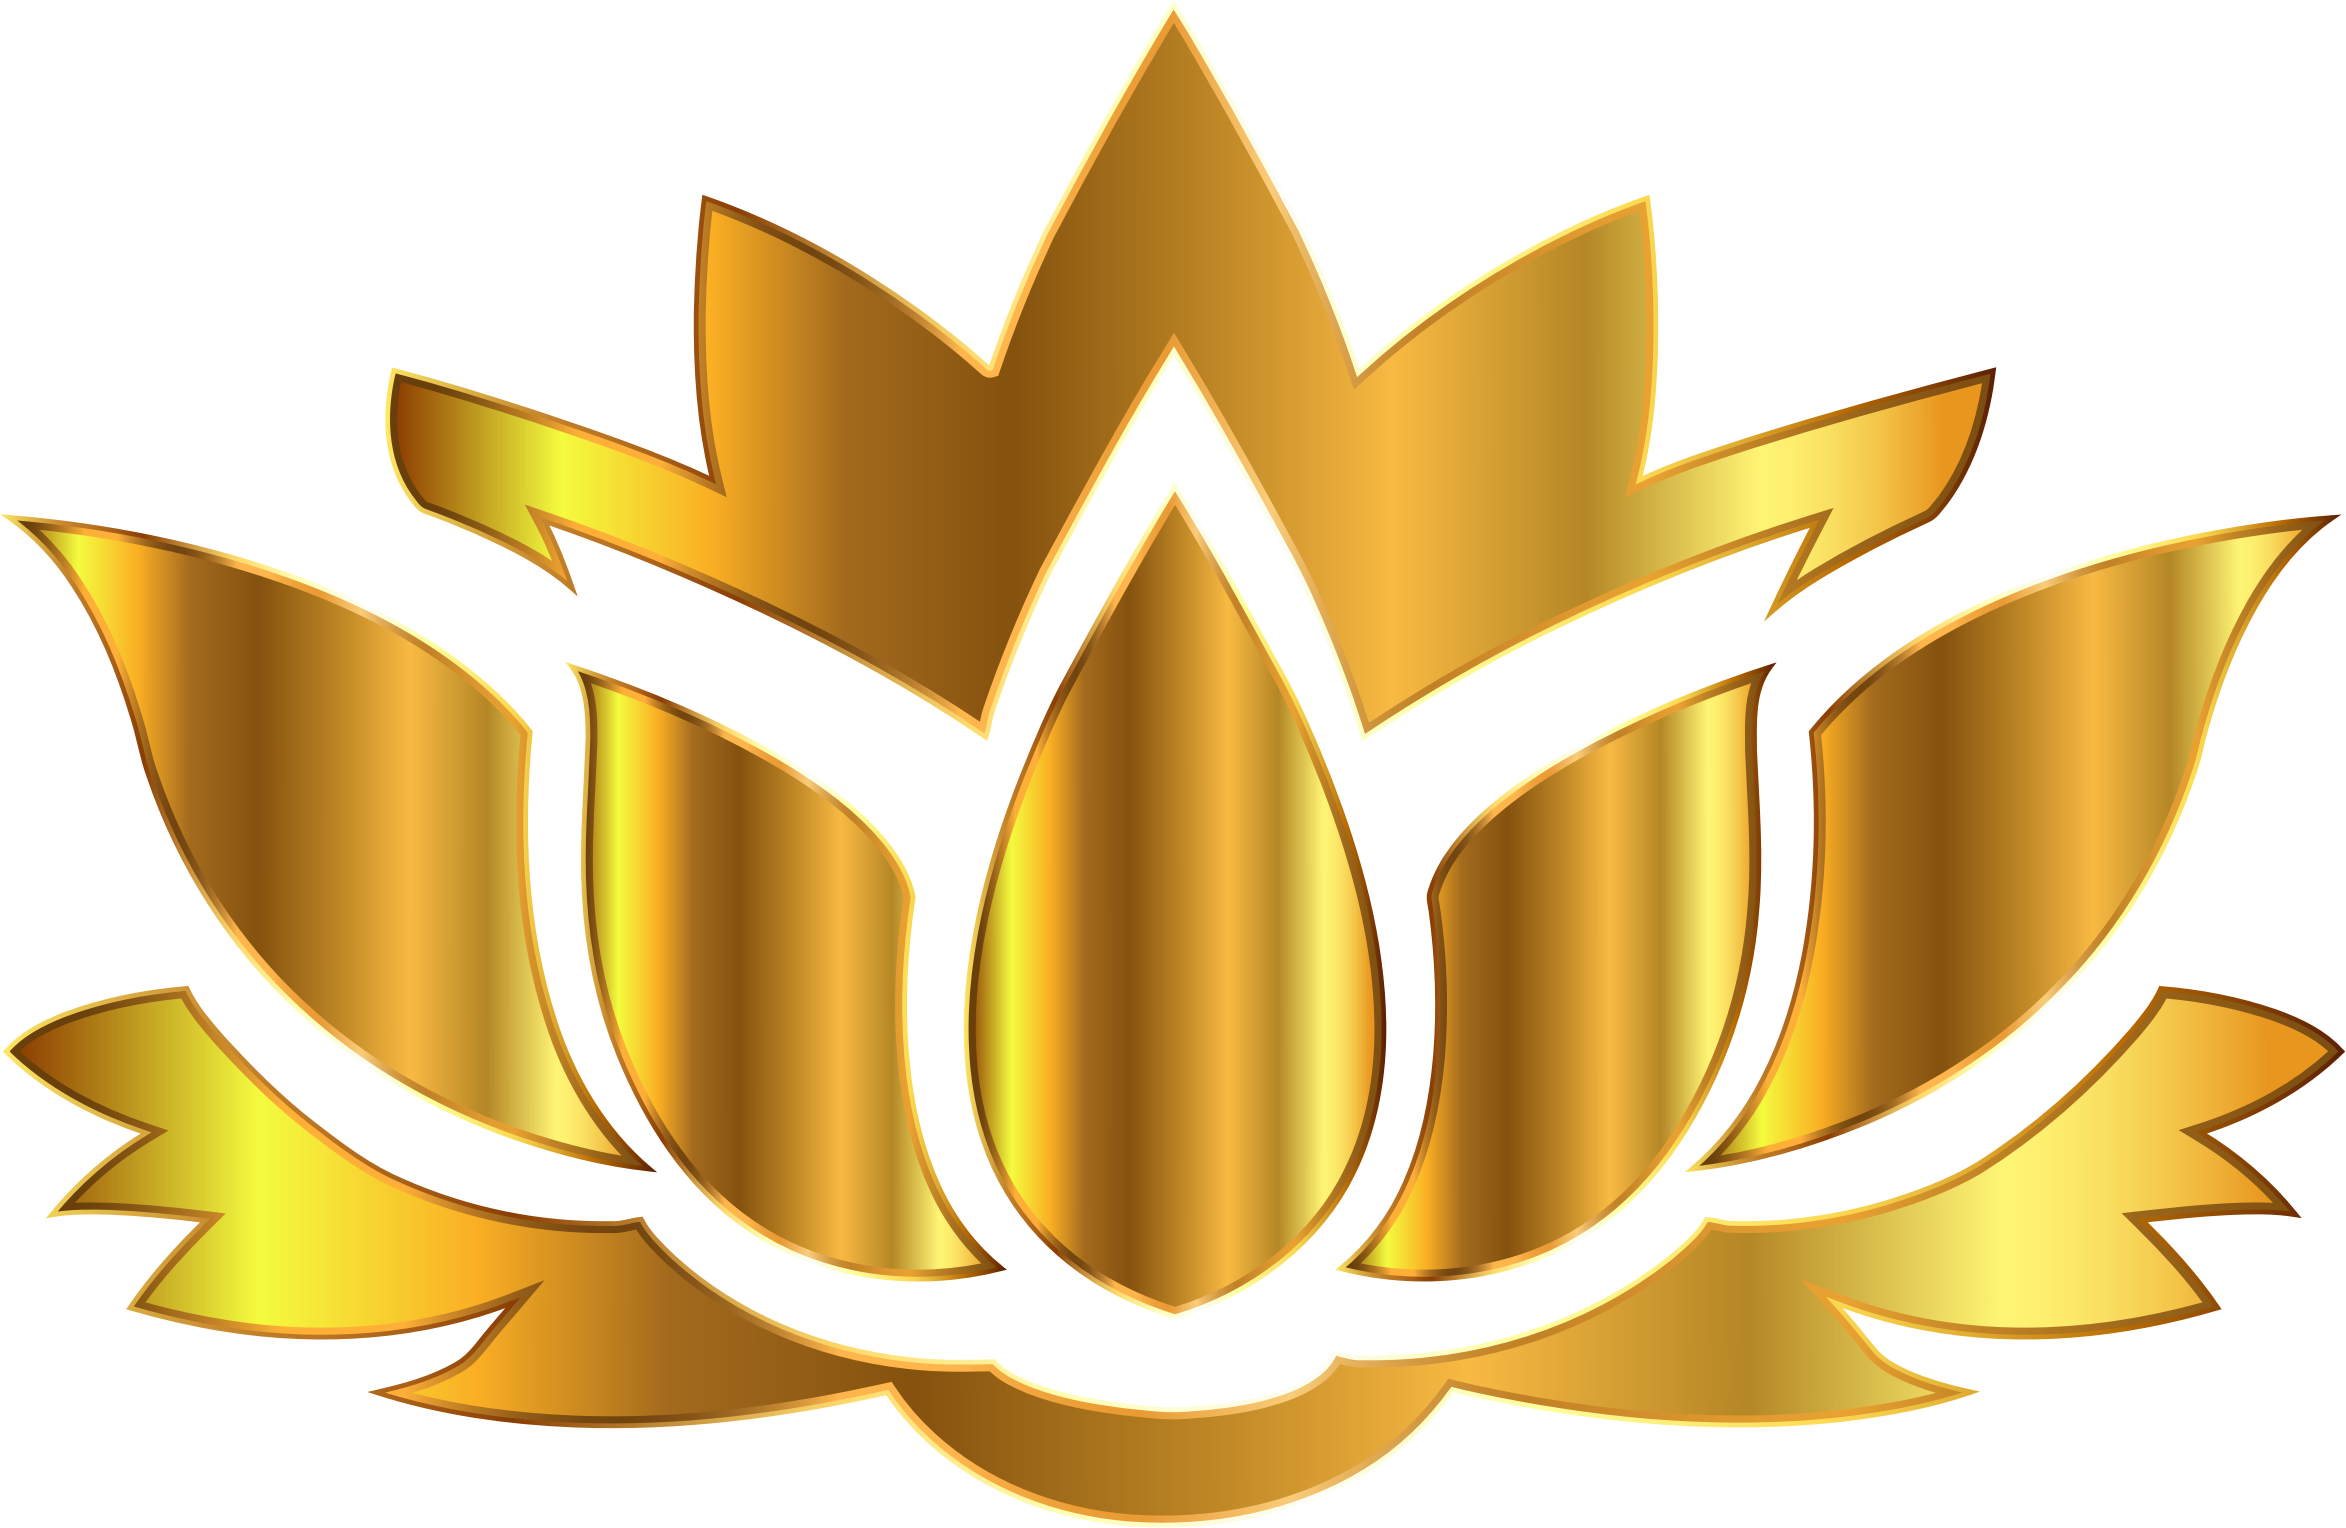 No money clipart no background clipart free download Clipart - Gold Lotus Flower Silhouette No Background clipart free download